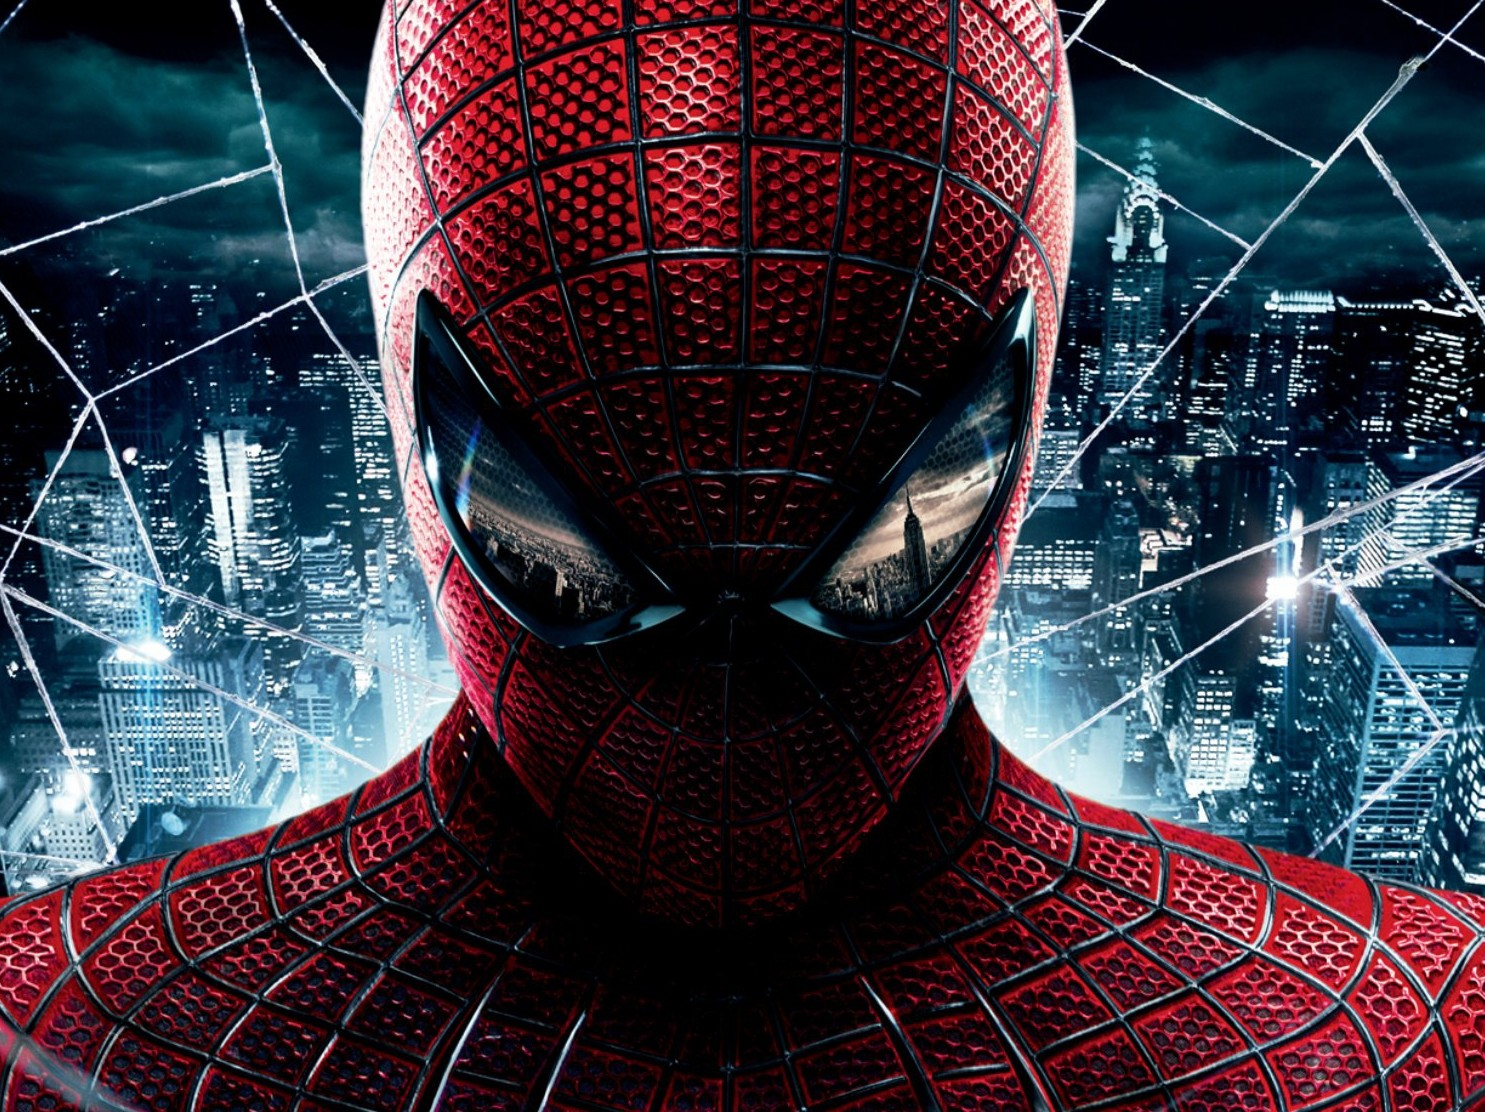 The Amazing Spider Man (2012)